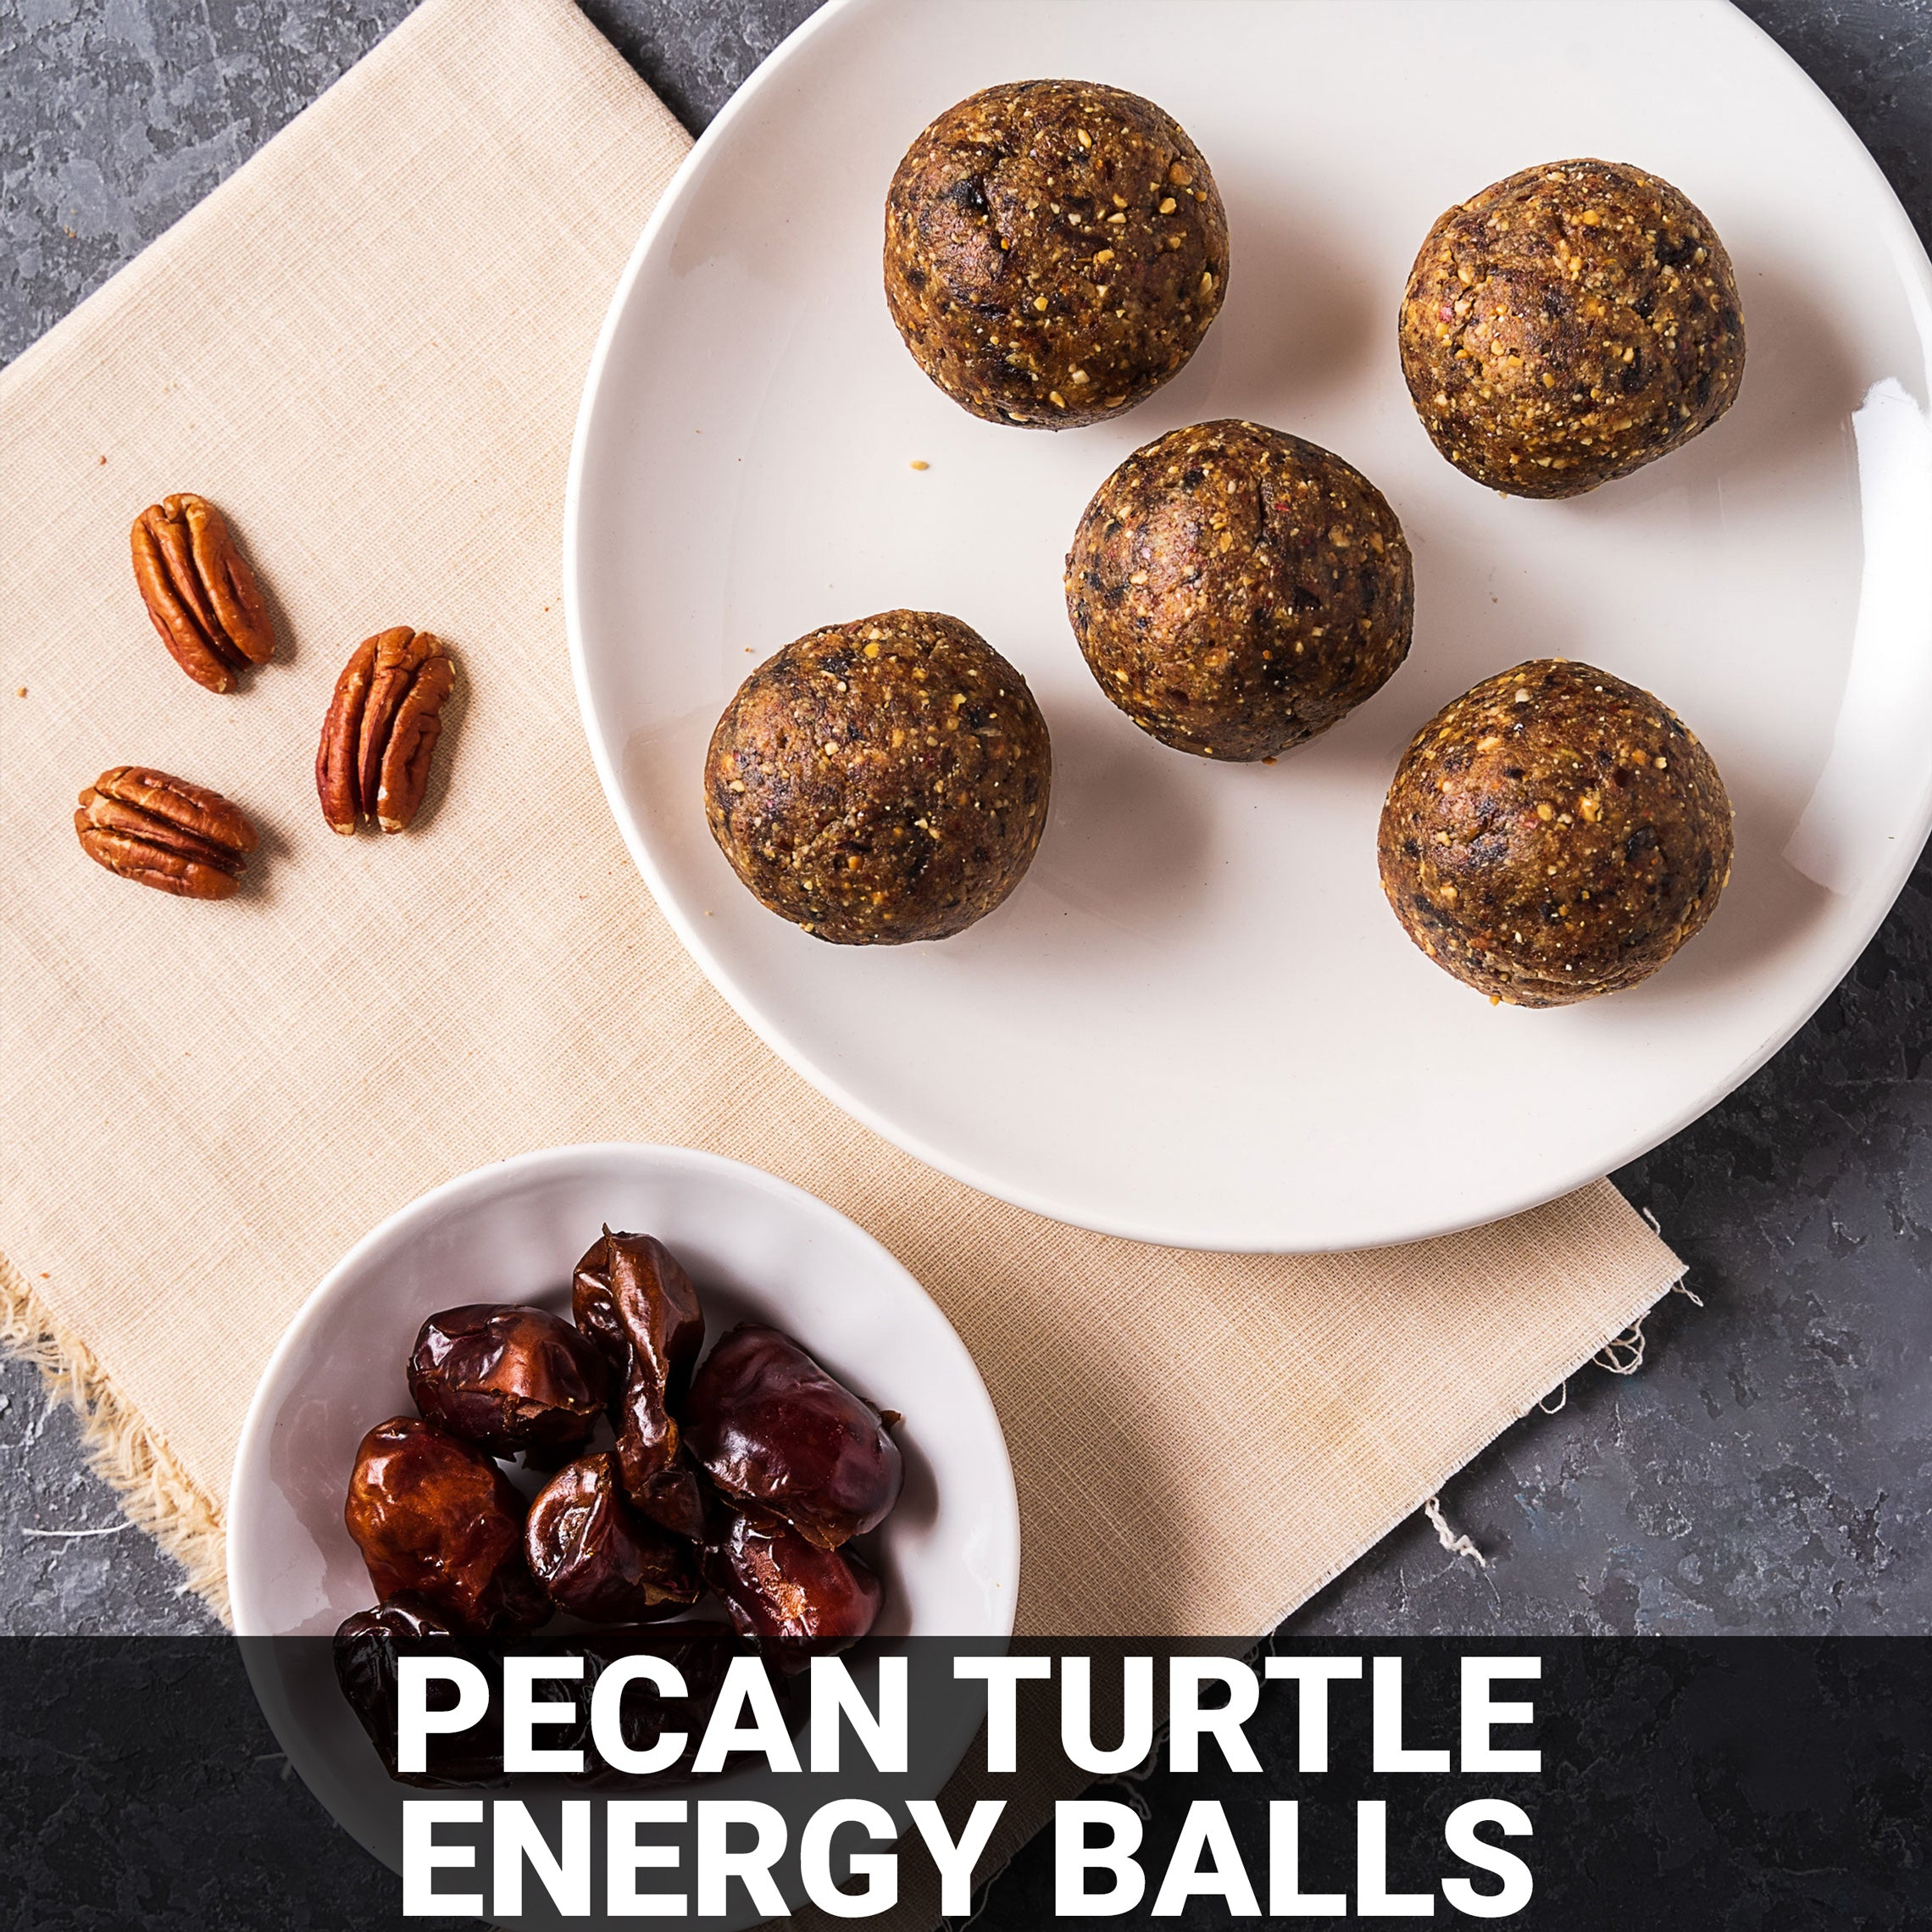 Pecan Turtle Energy Balls Recipe - Foods Alive